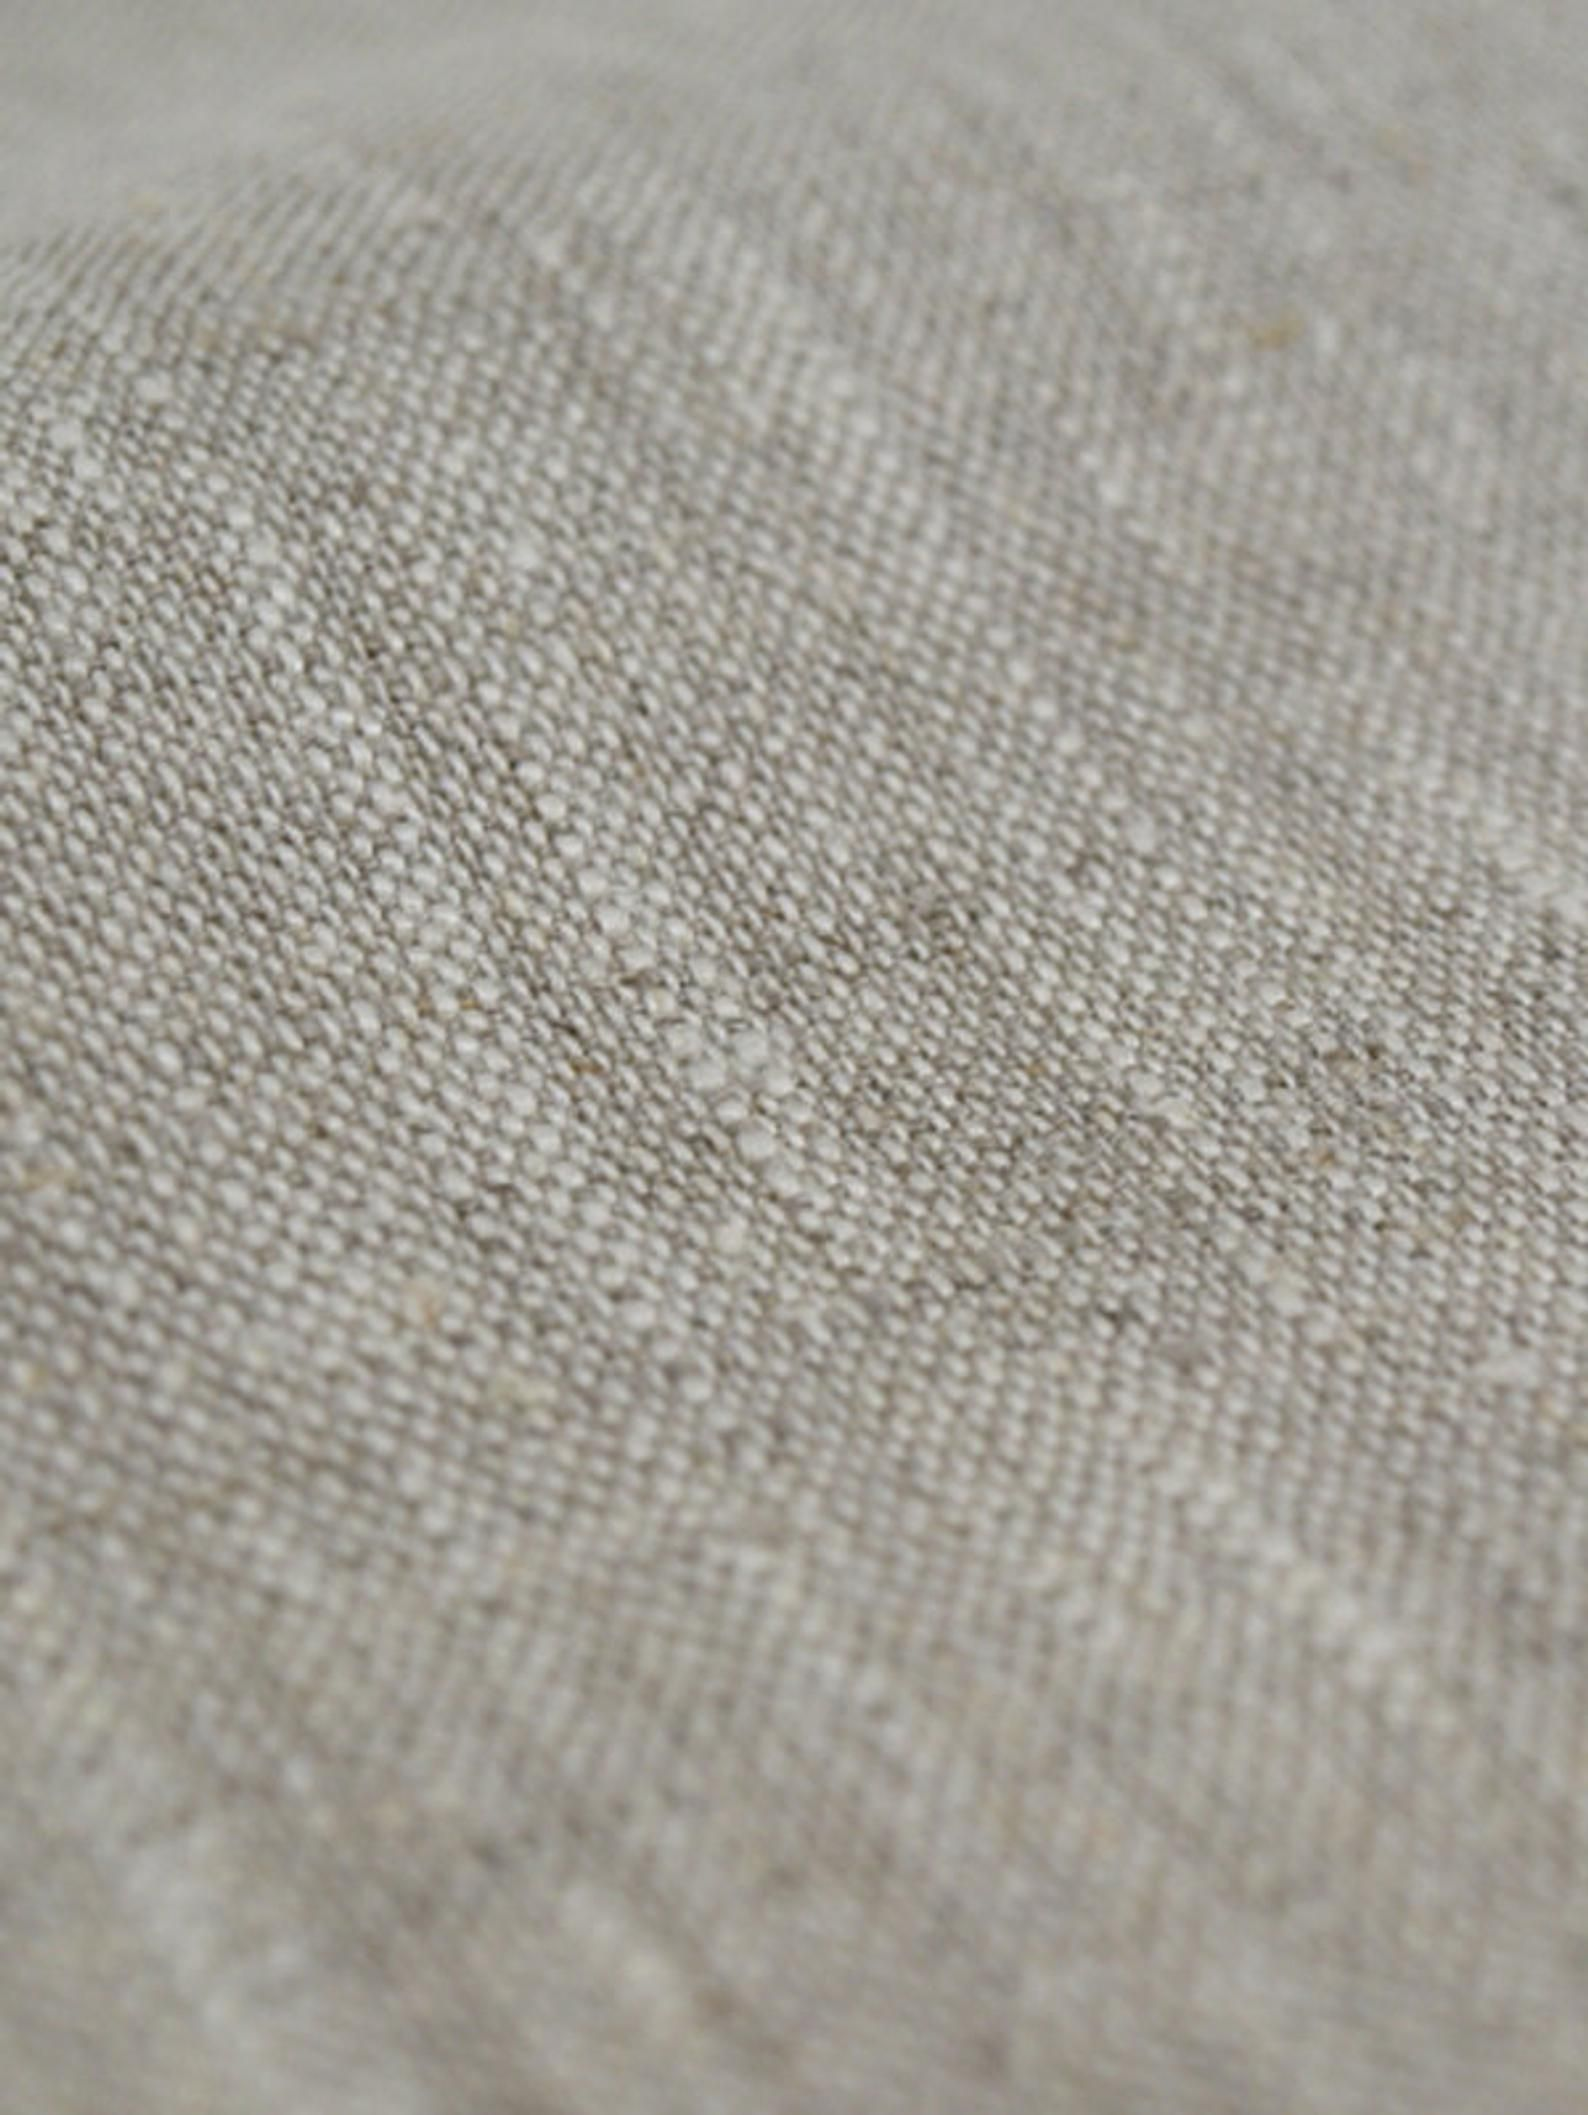 Fabric 100 Percent Linen Flax Natural Cloth Undyed Unbleached Etsy Undyed Linen Home Textile